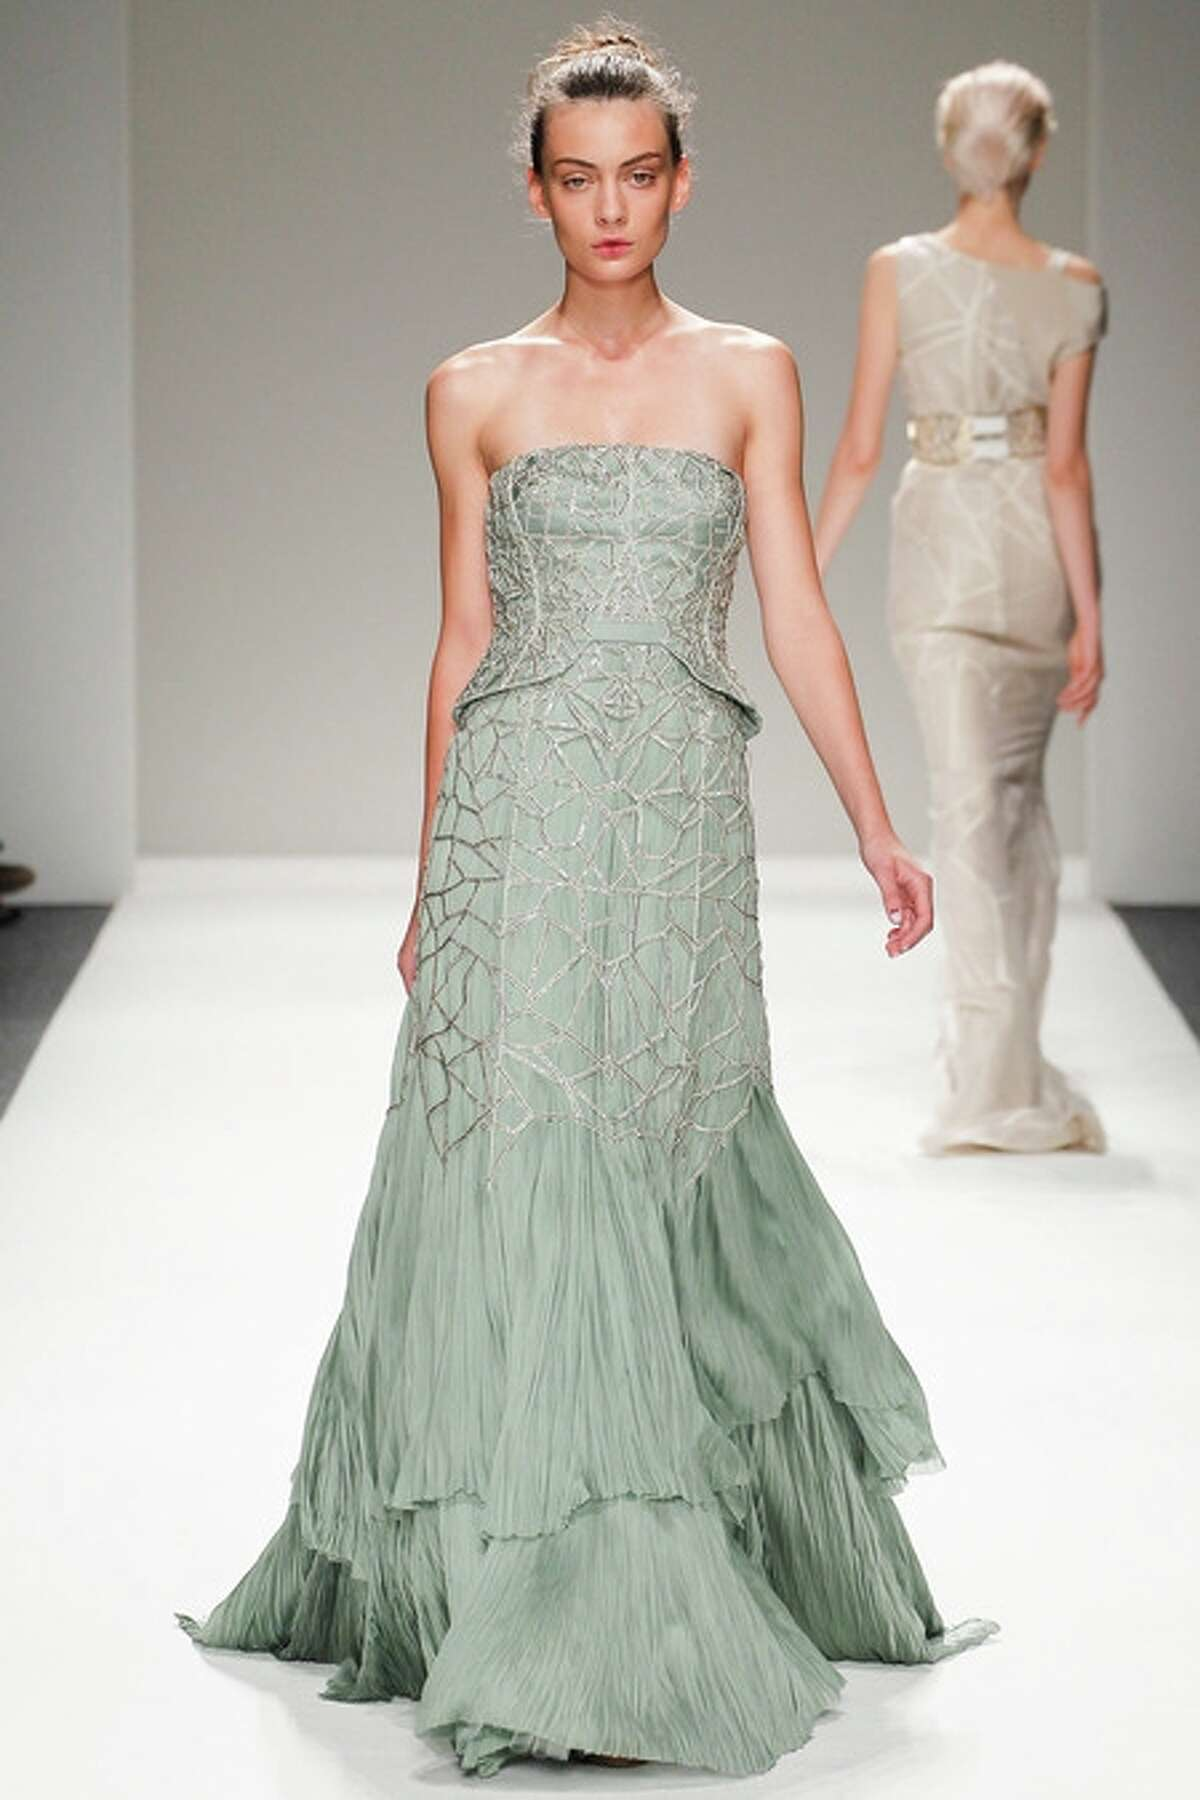 Designer Bibhu Mohapatra is showing his collection at Fashion Houston 2013.